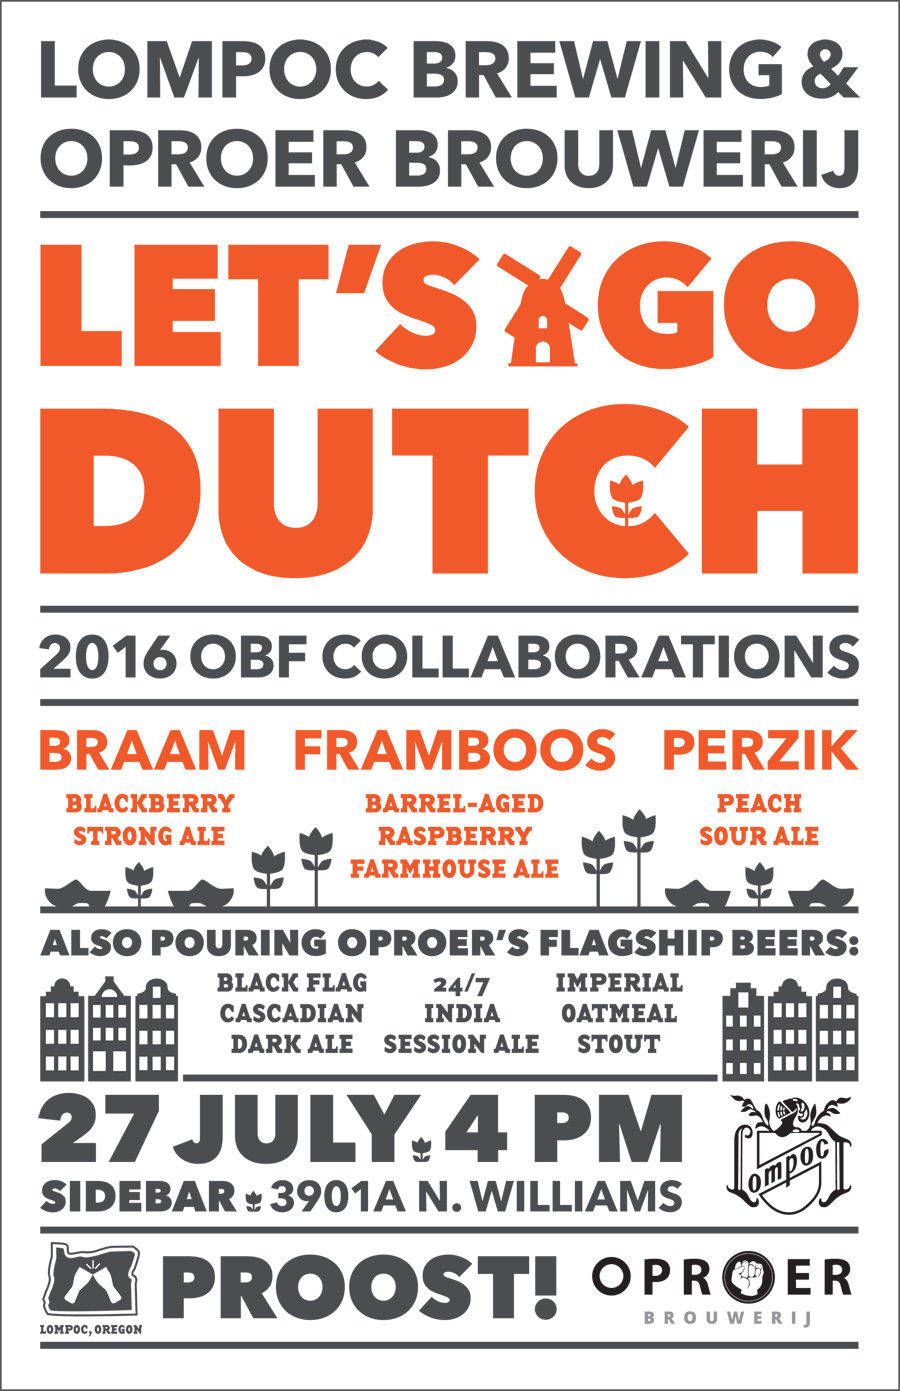 Lompoc and Oproer Brewing Oregon Brewers Fest Collaboration Beer Event Poster Design